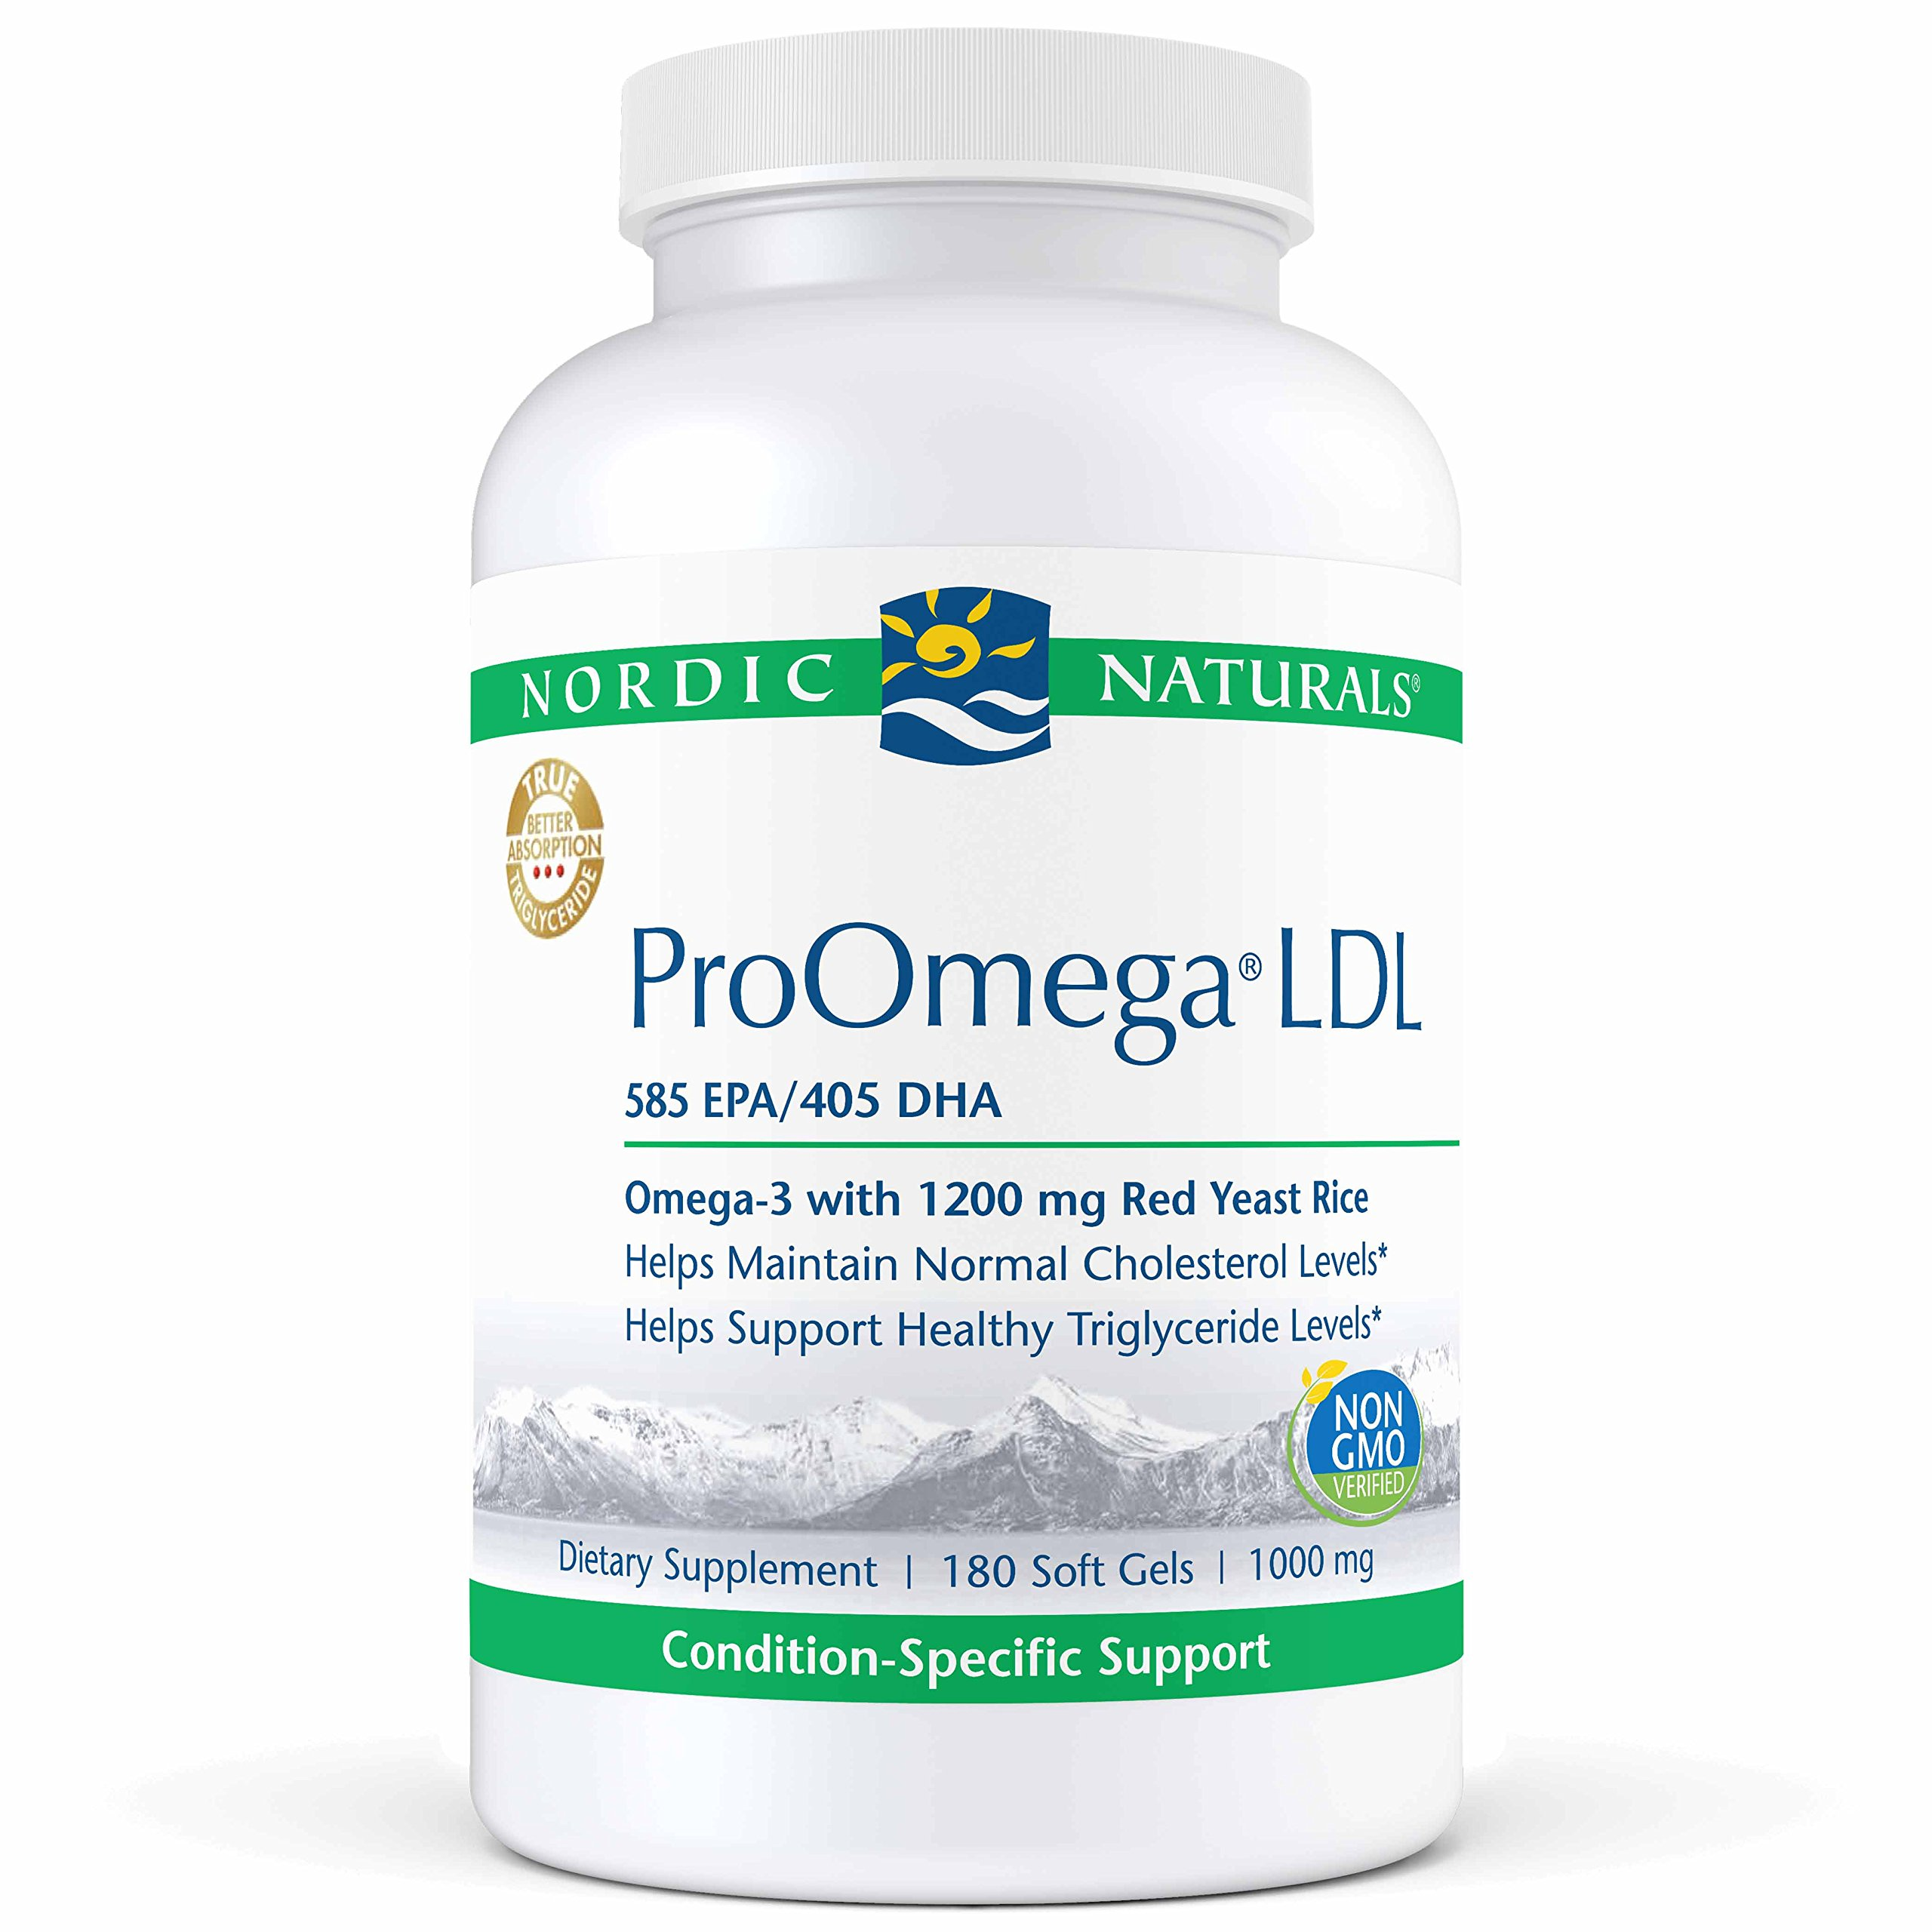 Nordic Naturals ProOmega LDL - Fish Oil, 585 mg EPA, 405 mg DHA, 1200 mg Red Yeast Rice, 30 mg CoQ10 Ubiquinone, Support for Healthy Cholesterol and Triglyceride Levels*, 180 Soft Gels by Nordic Naturals (Image #1)